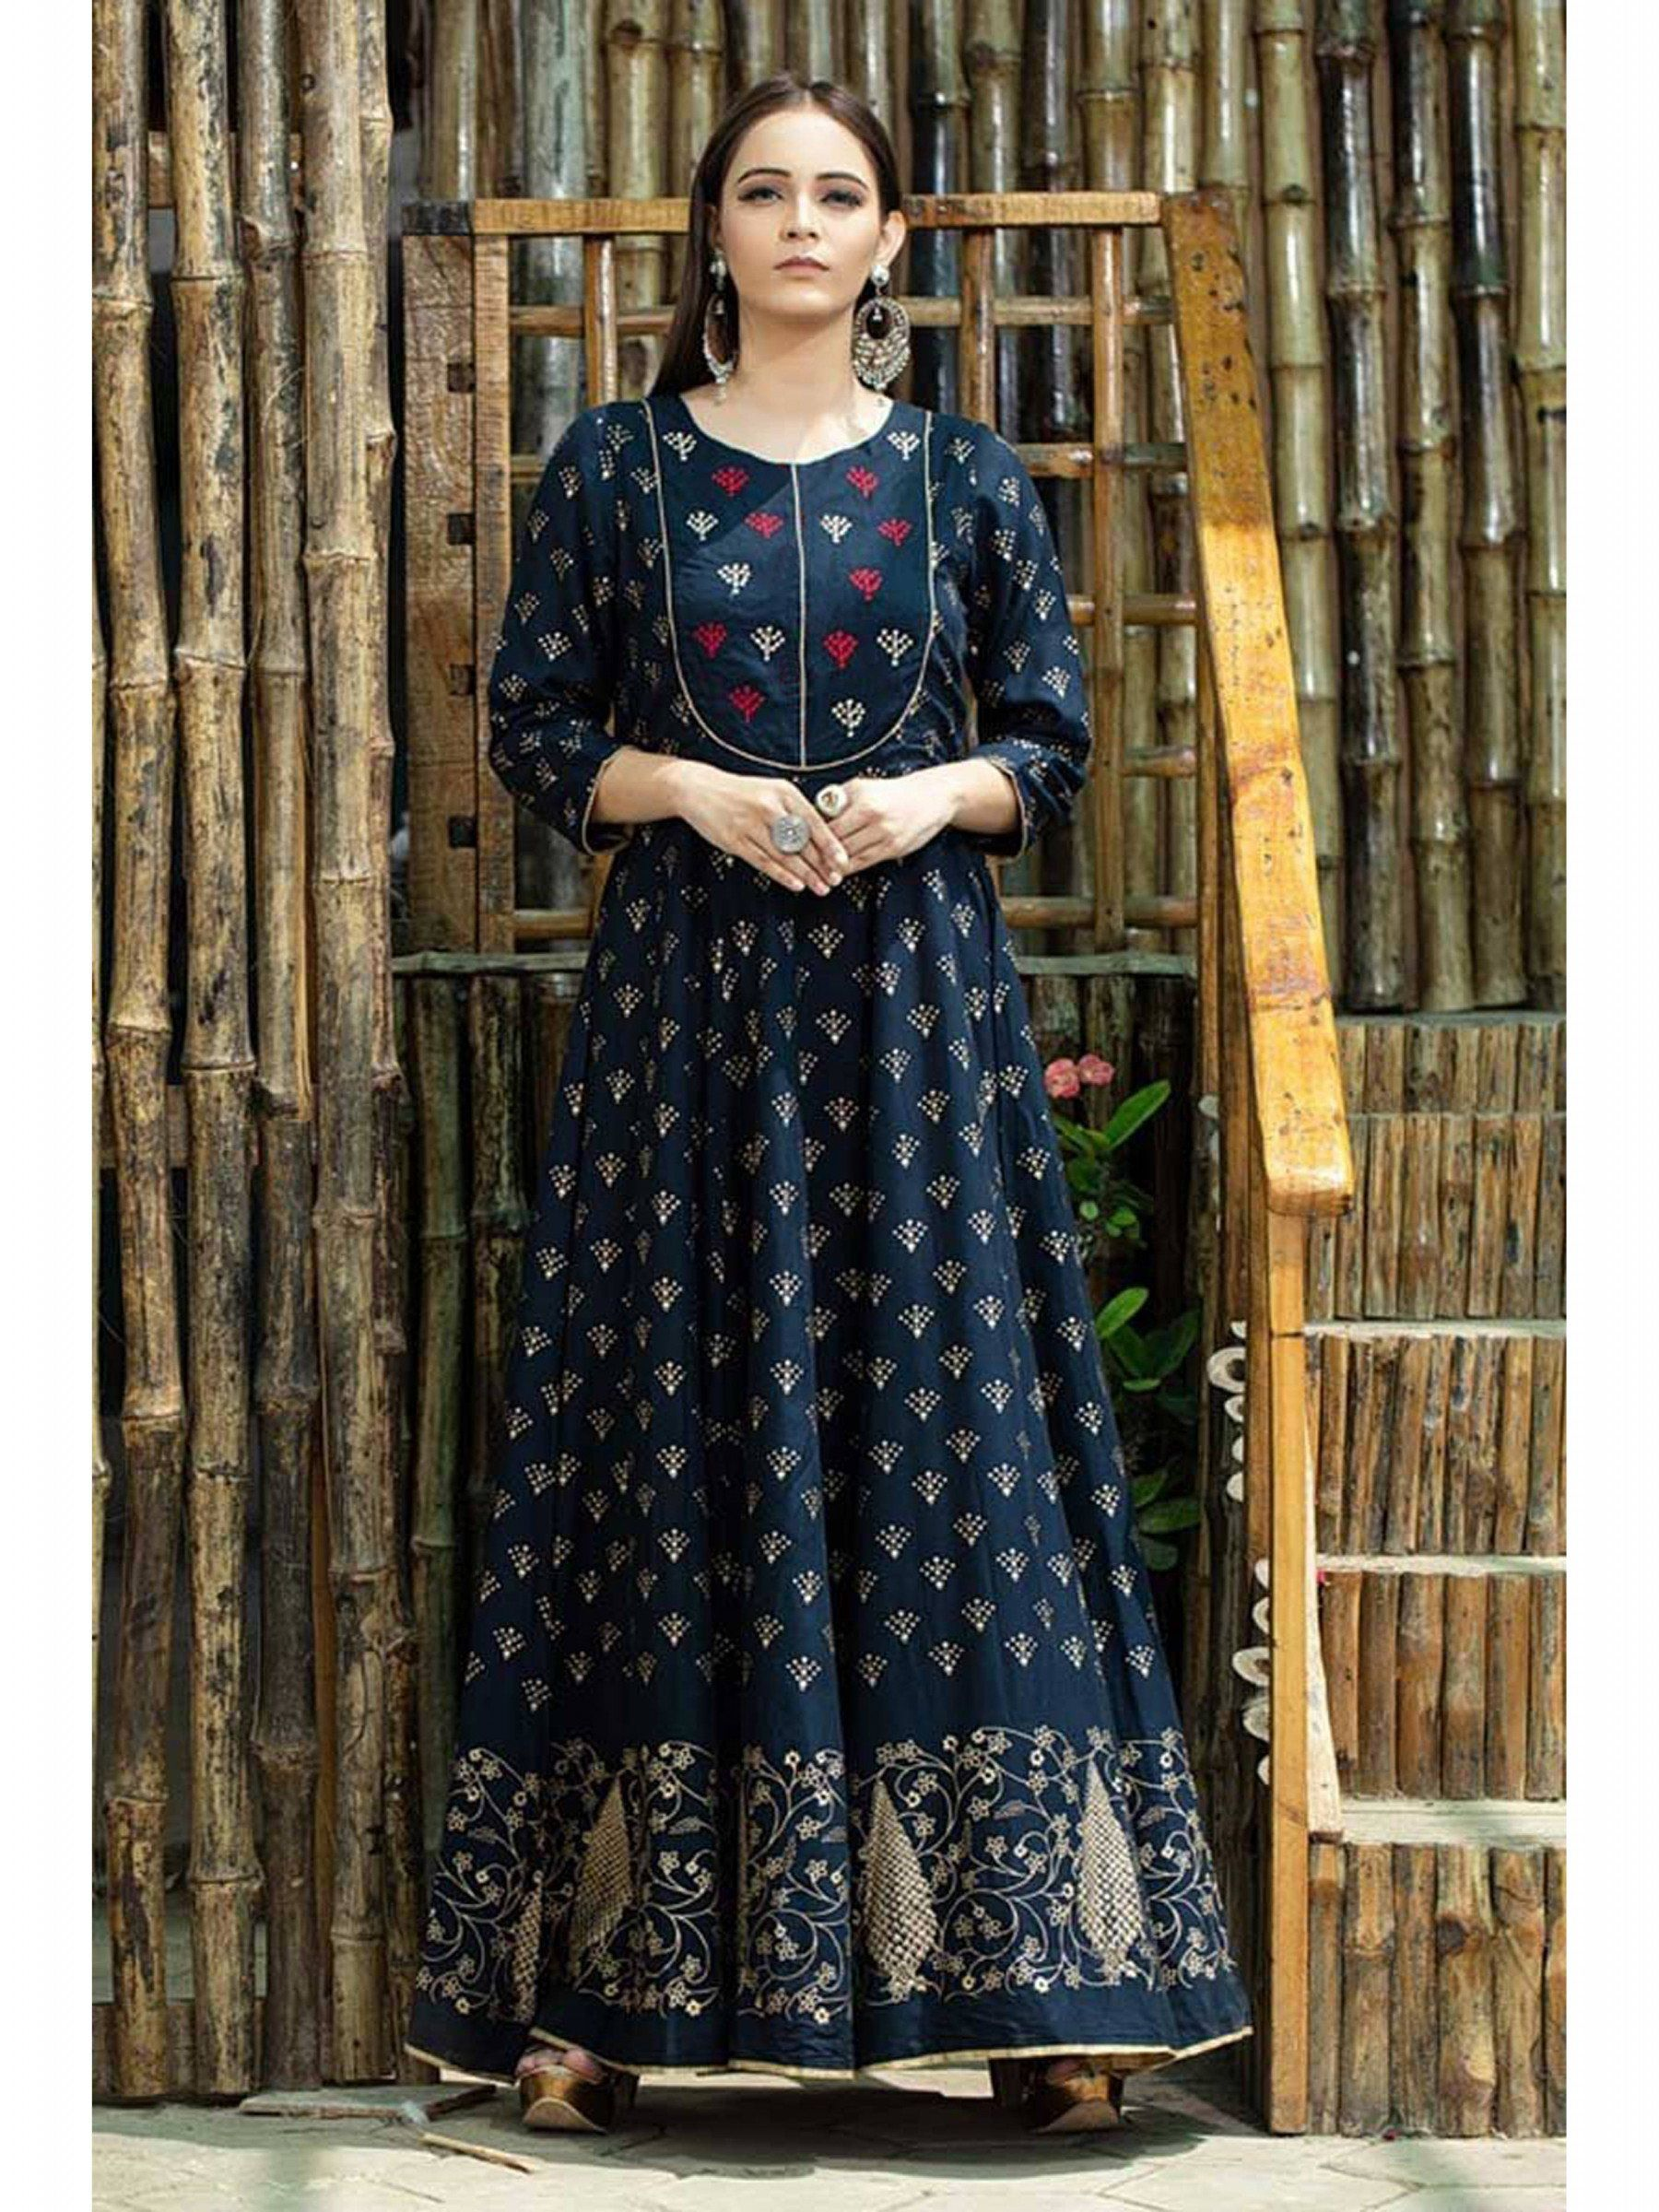 Navy Blue Colored Readymade Floor Length Designer Gown In Muslin Cotton Silk Designed With Beautiful Digital Print All Over Printed Gowns Cotton Gowns Fashion